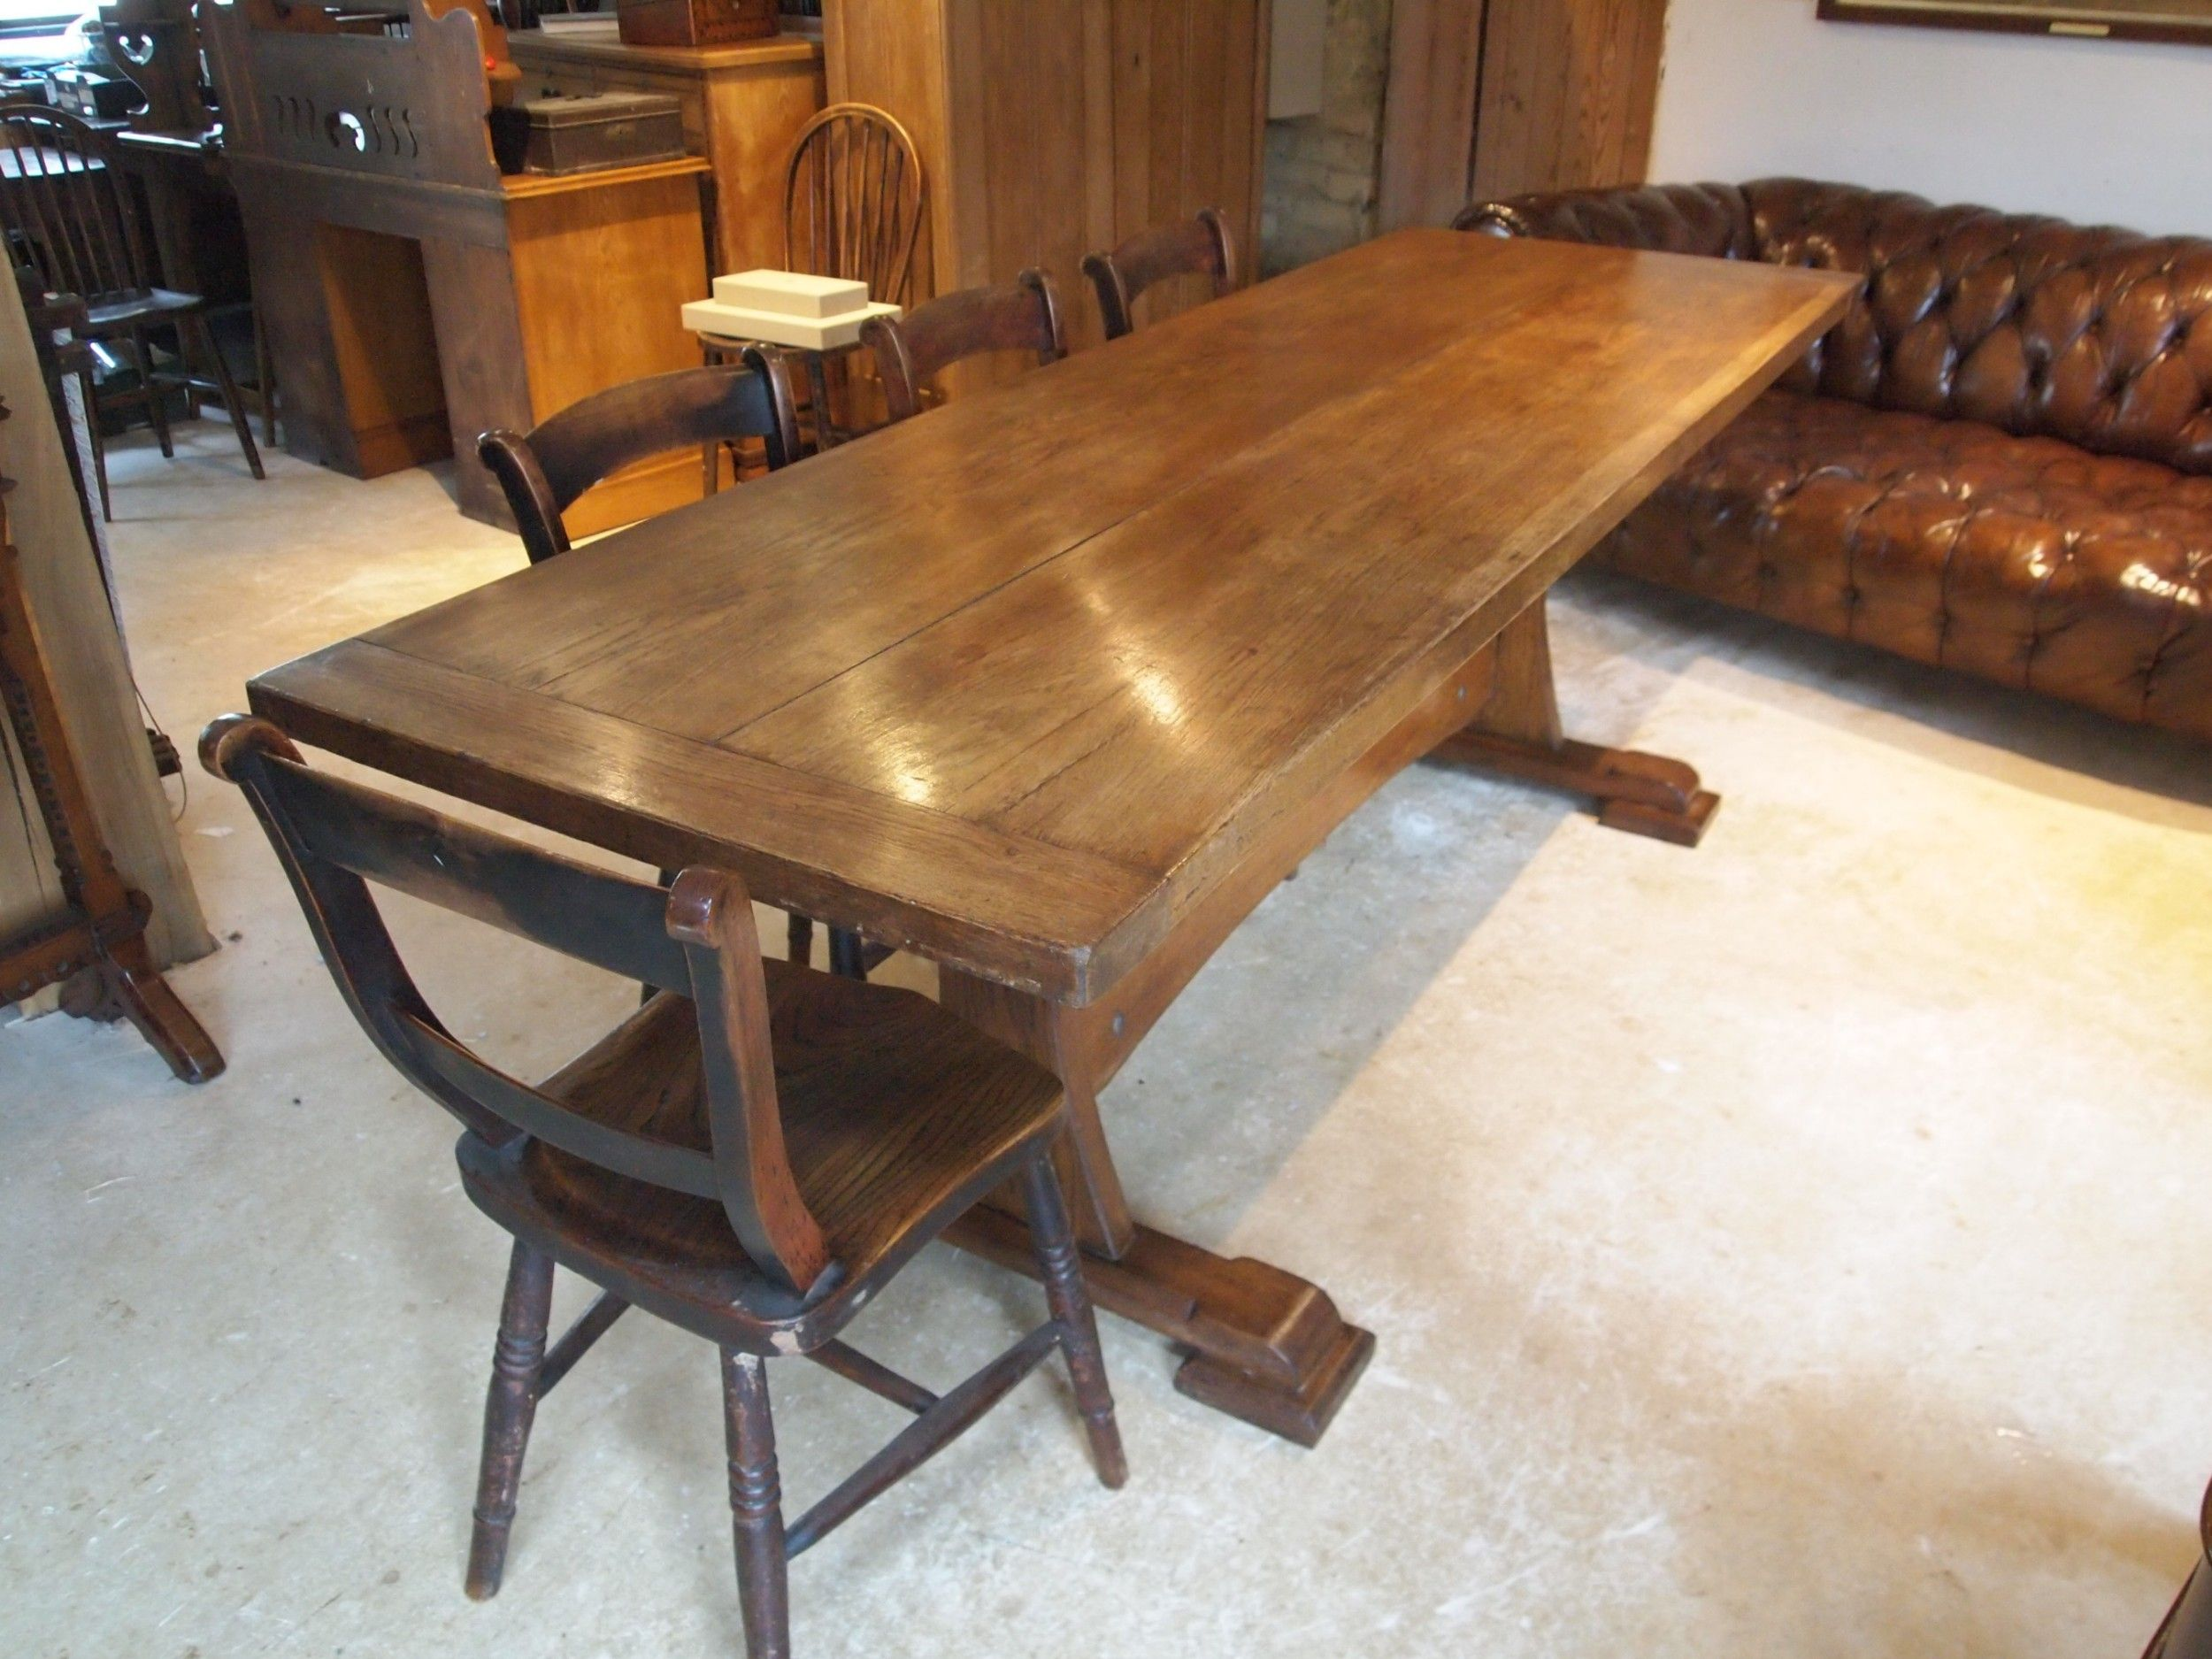 Table Refectory Farmhouse Dining Arts And Crafts Oak C1900 ...